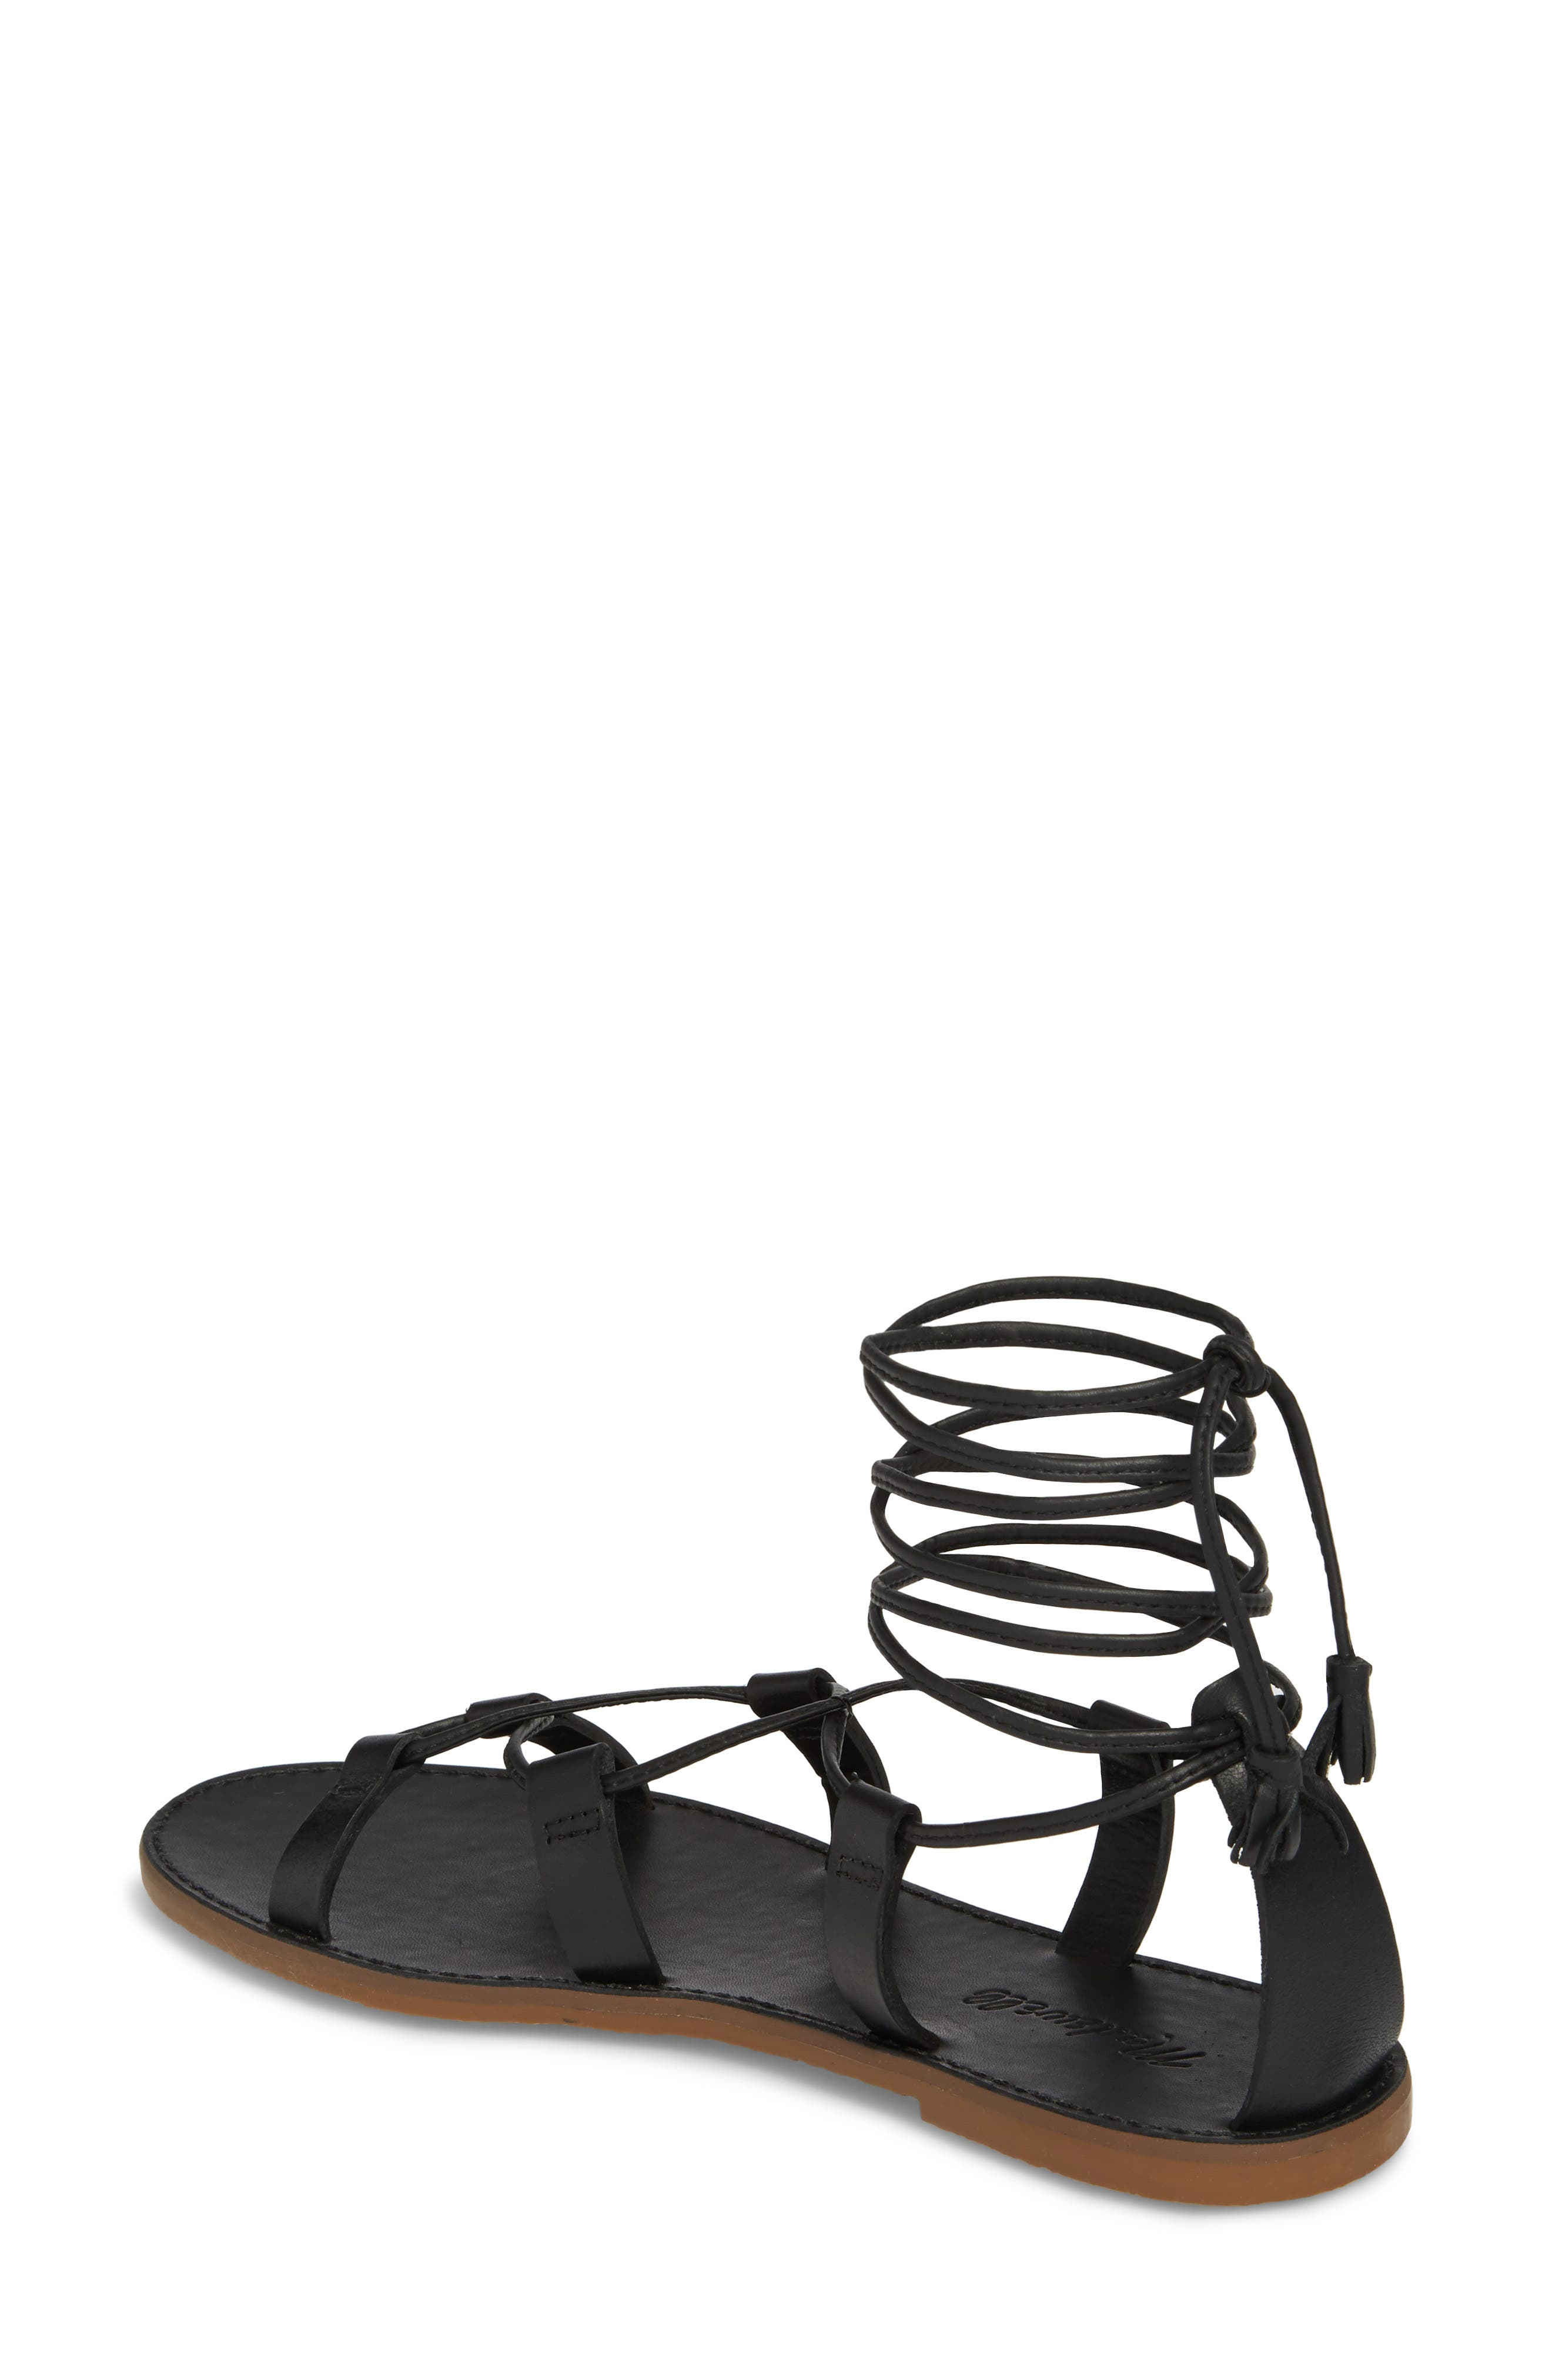 MADEWELL, The Boardwalk Lace-Up Sandal, Alternate thumbnail 2, color, 001